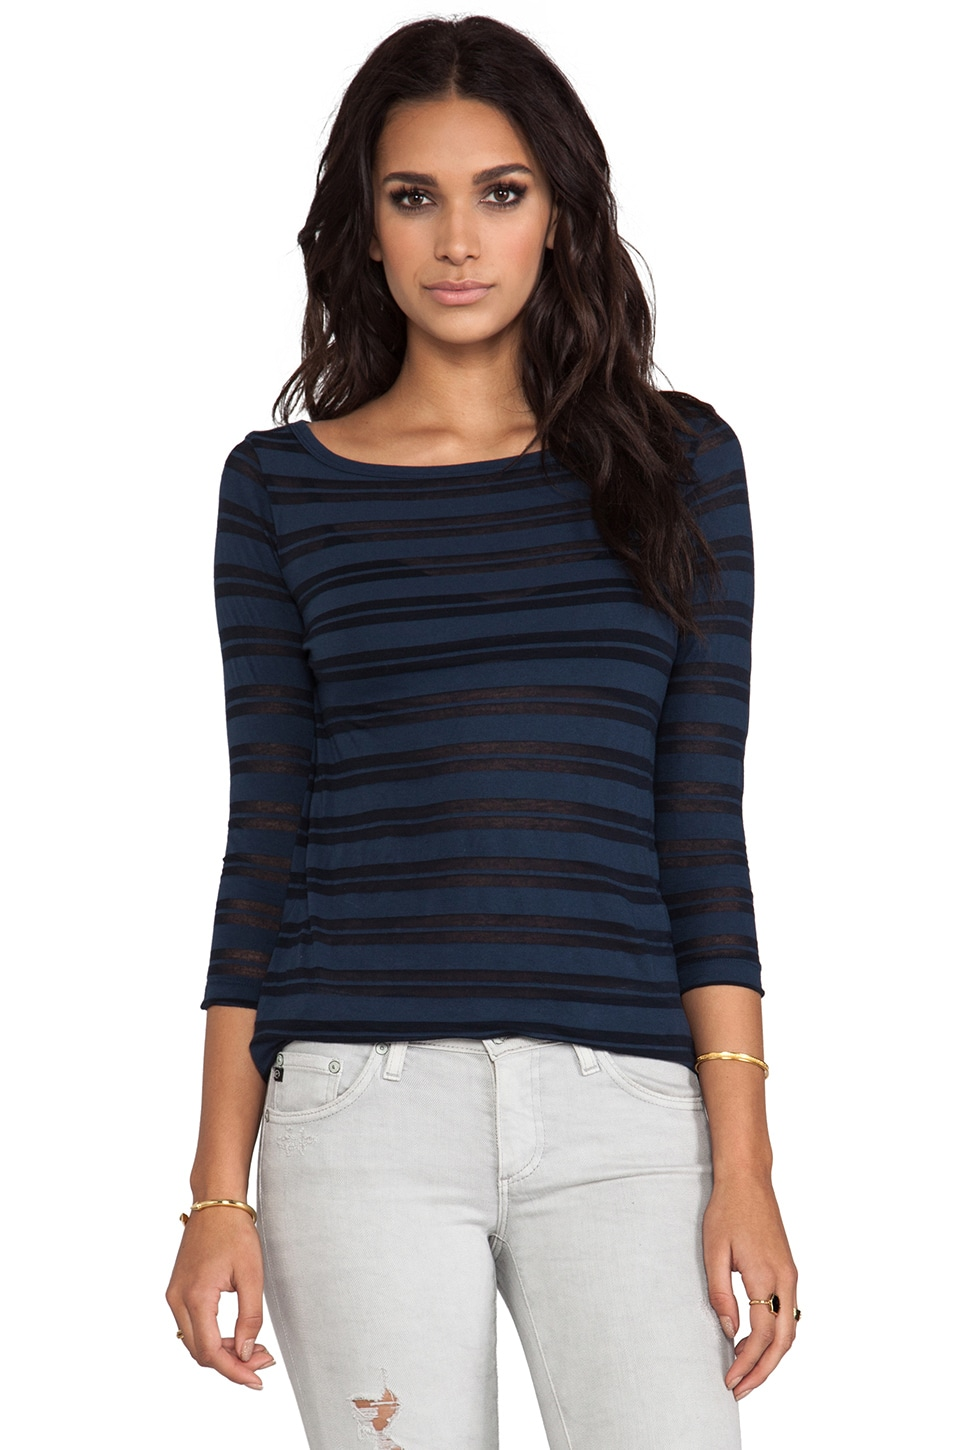 James Perse Jewel Neck Stripe Top in Imperial